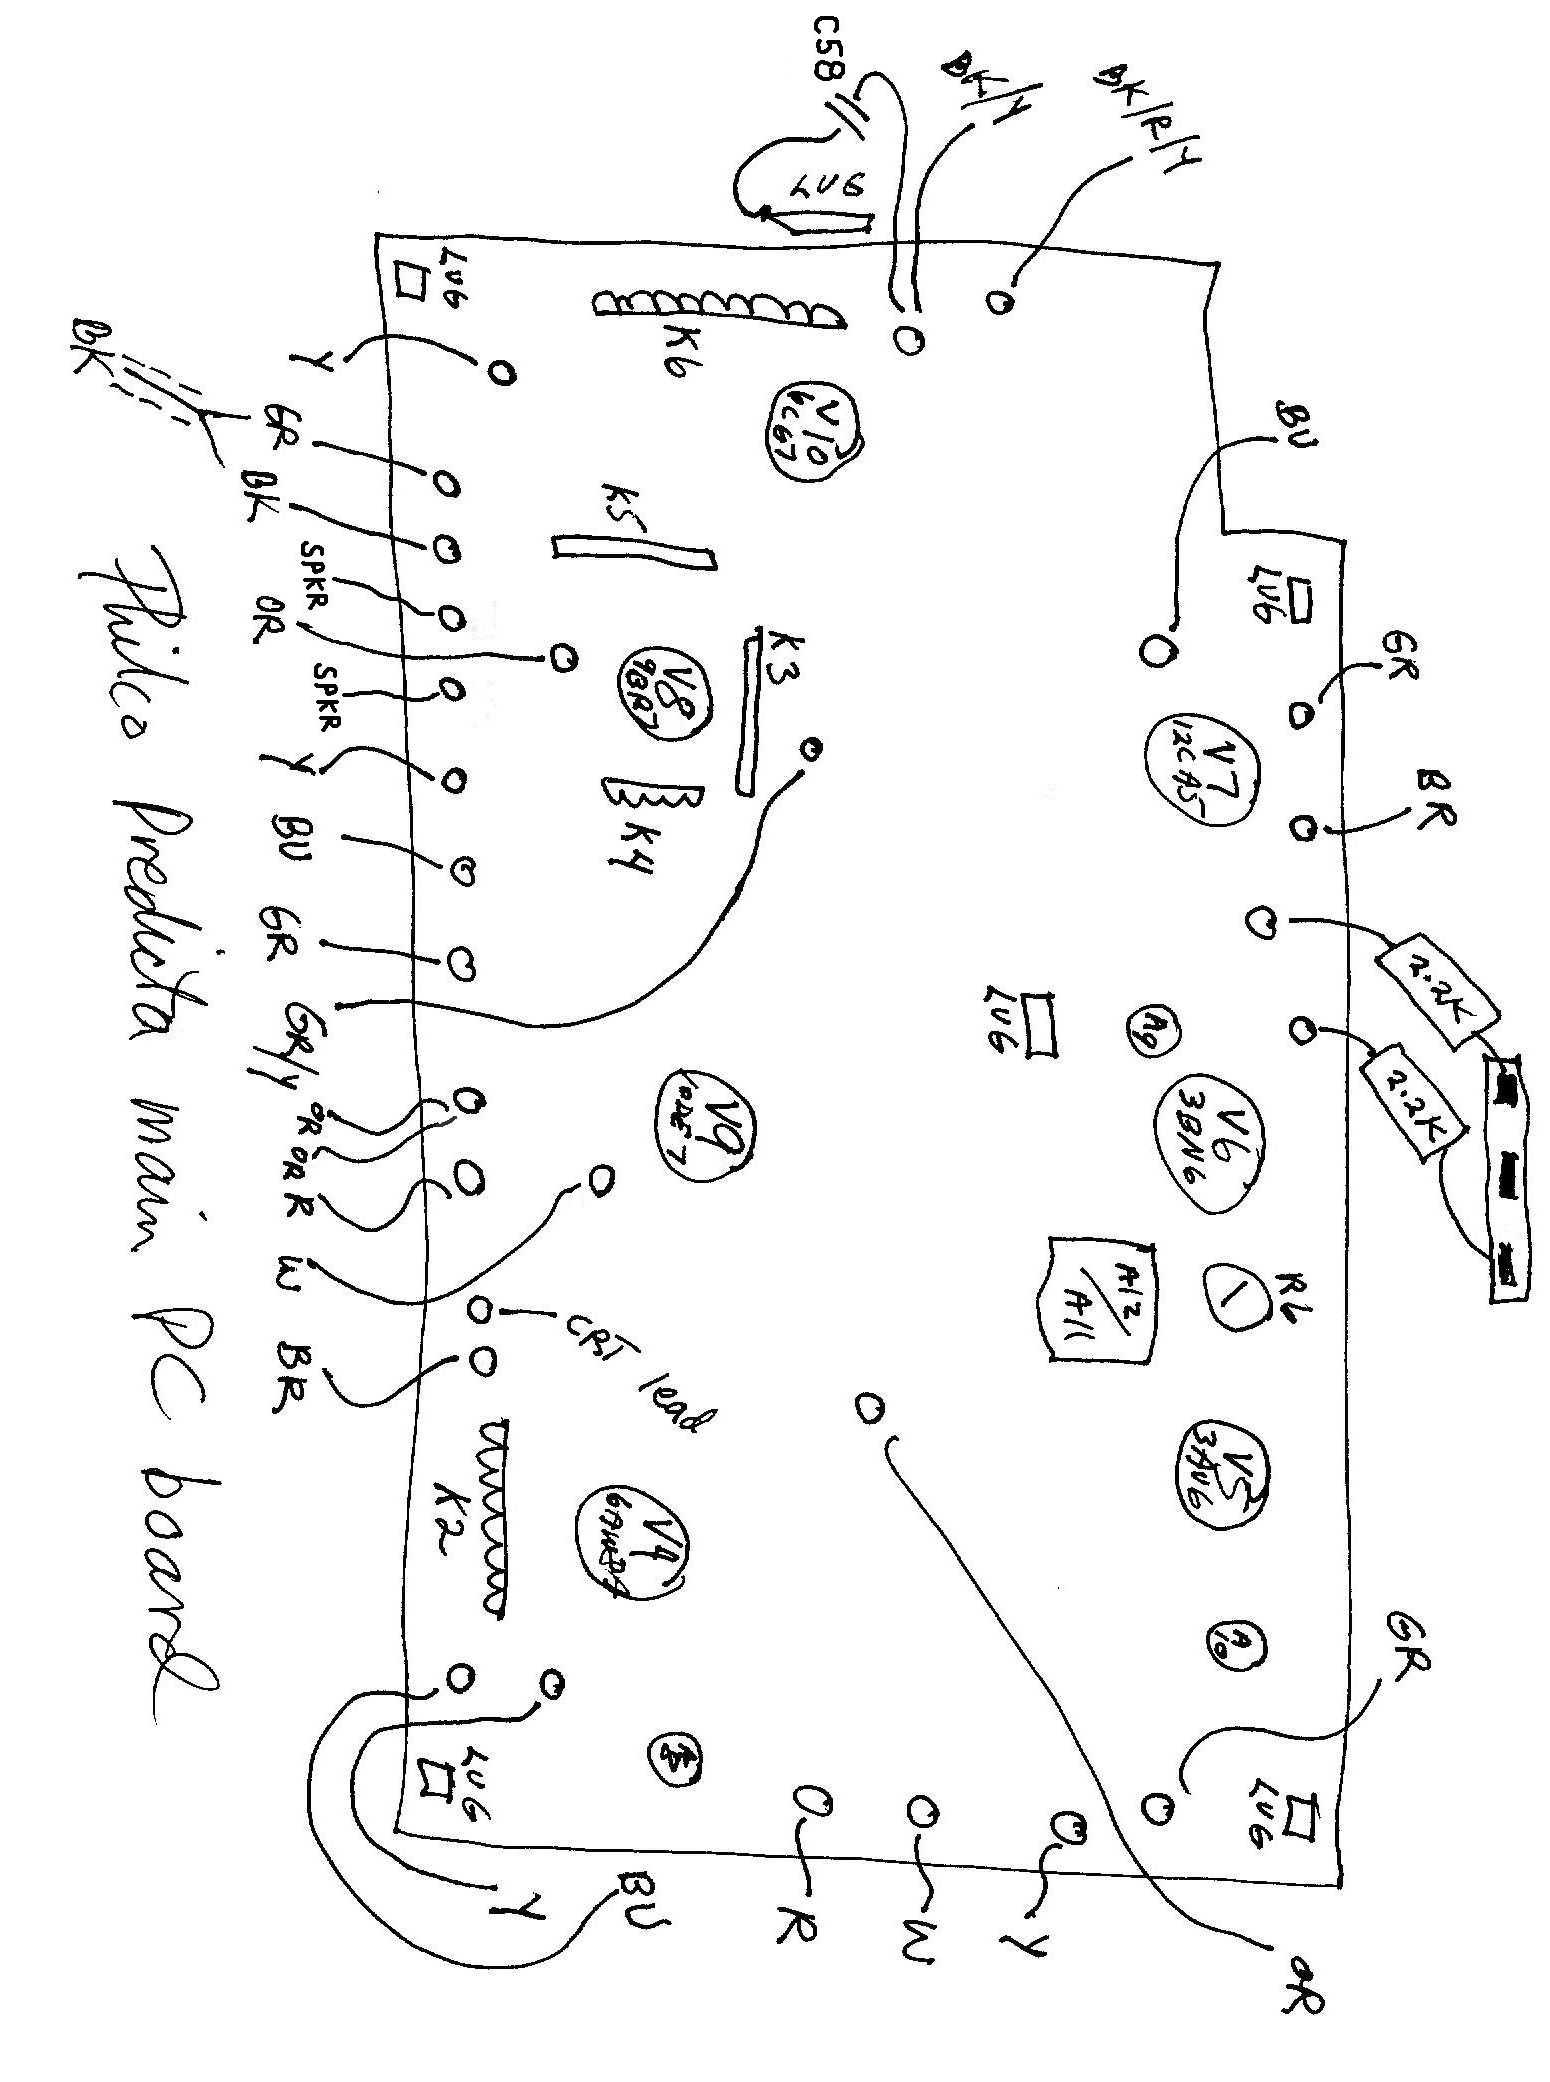 1998 ford f250 tail light wiring diagram